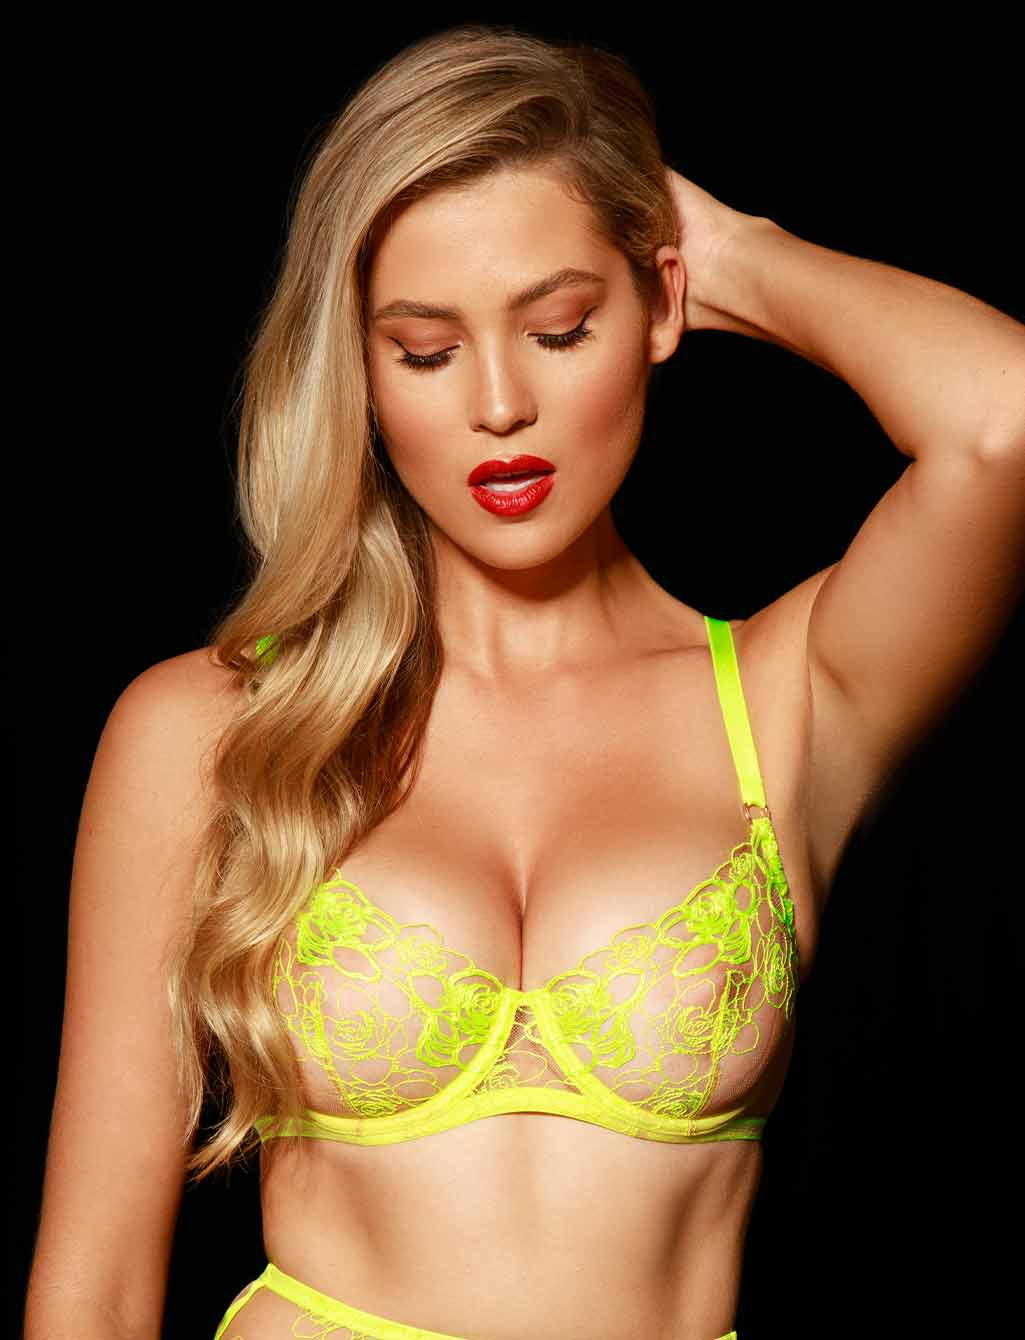 Lyndl Neon Underwire Bra - Shop Lingerie | Honey Birdette